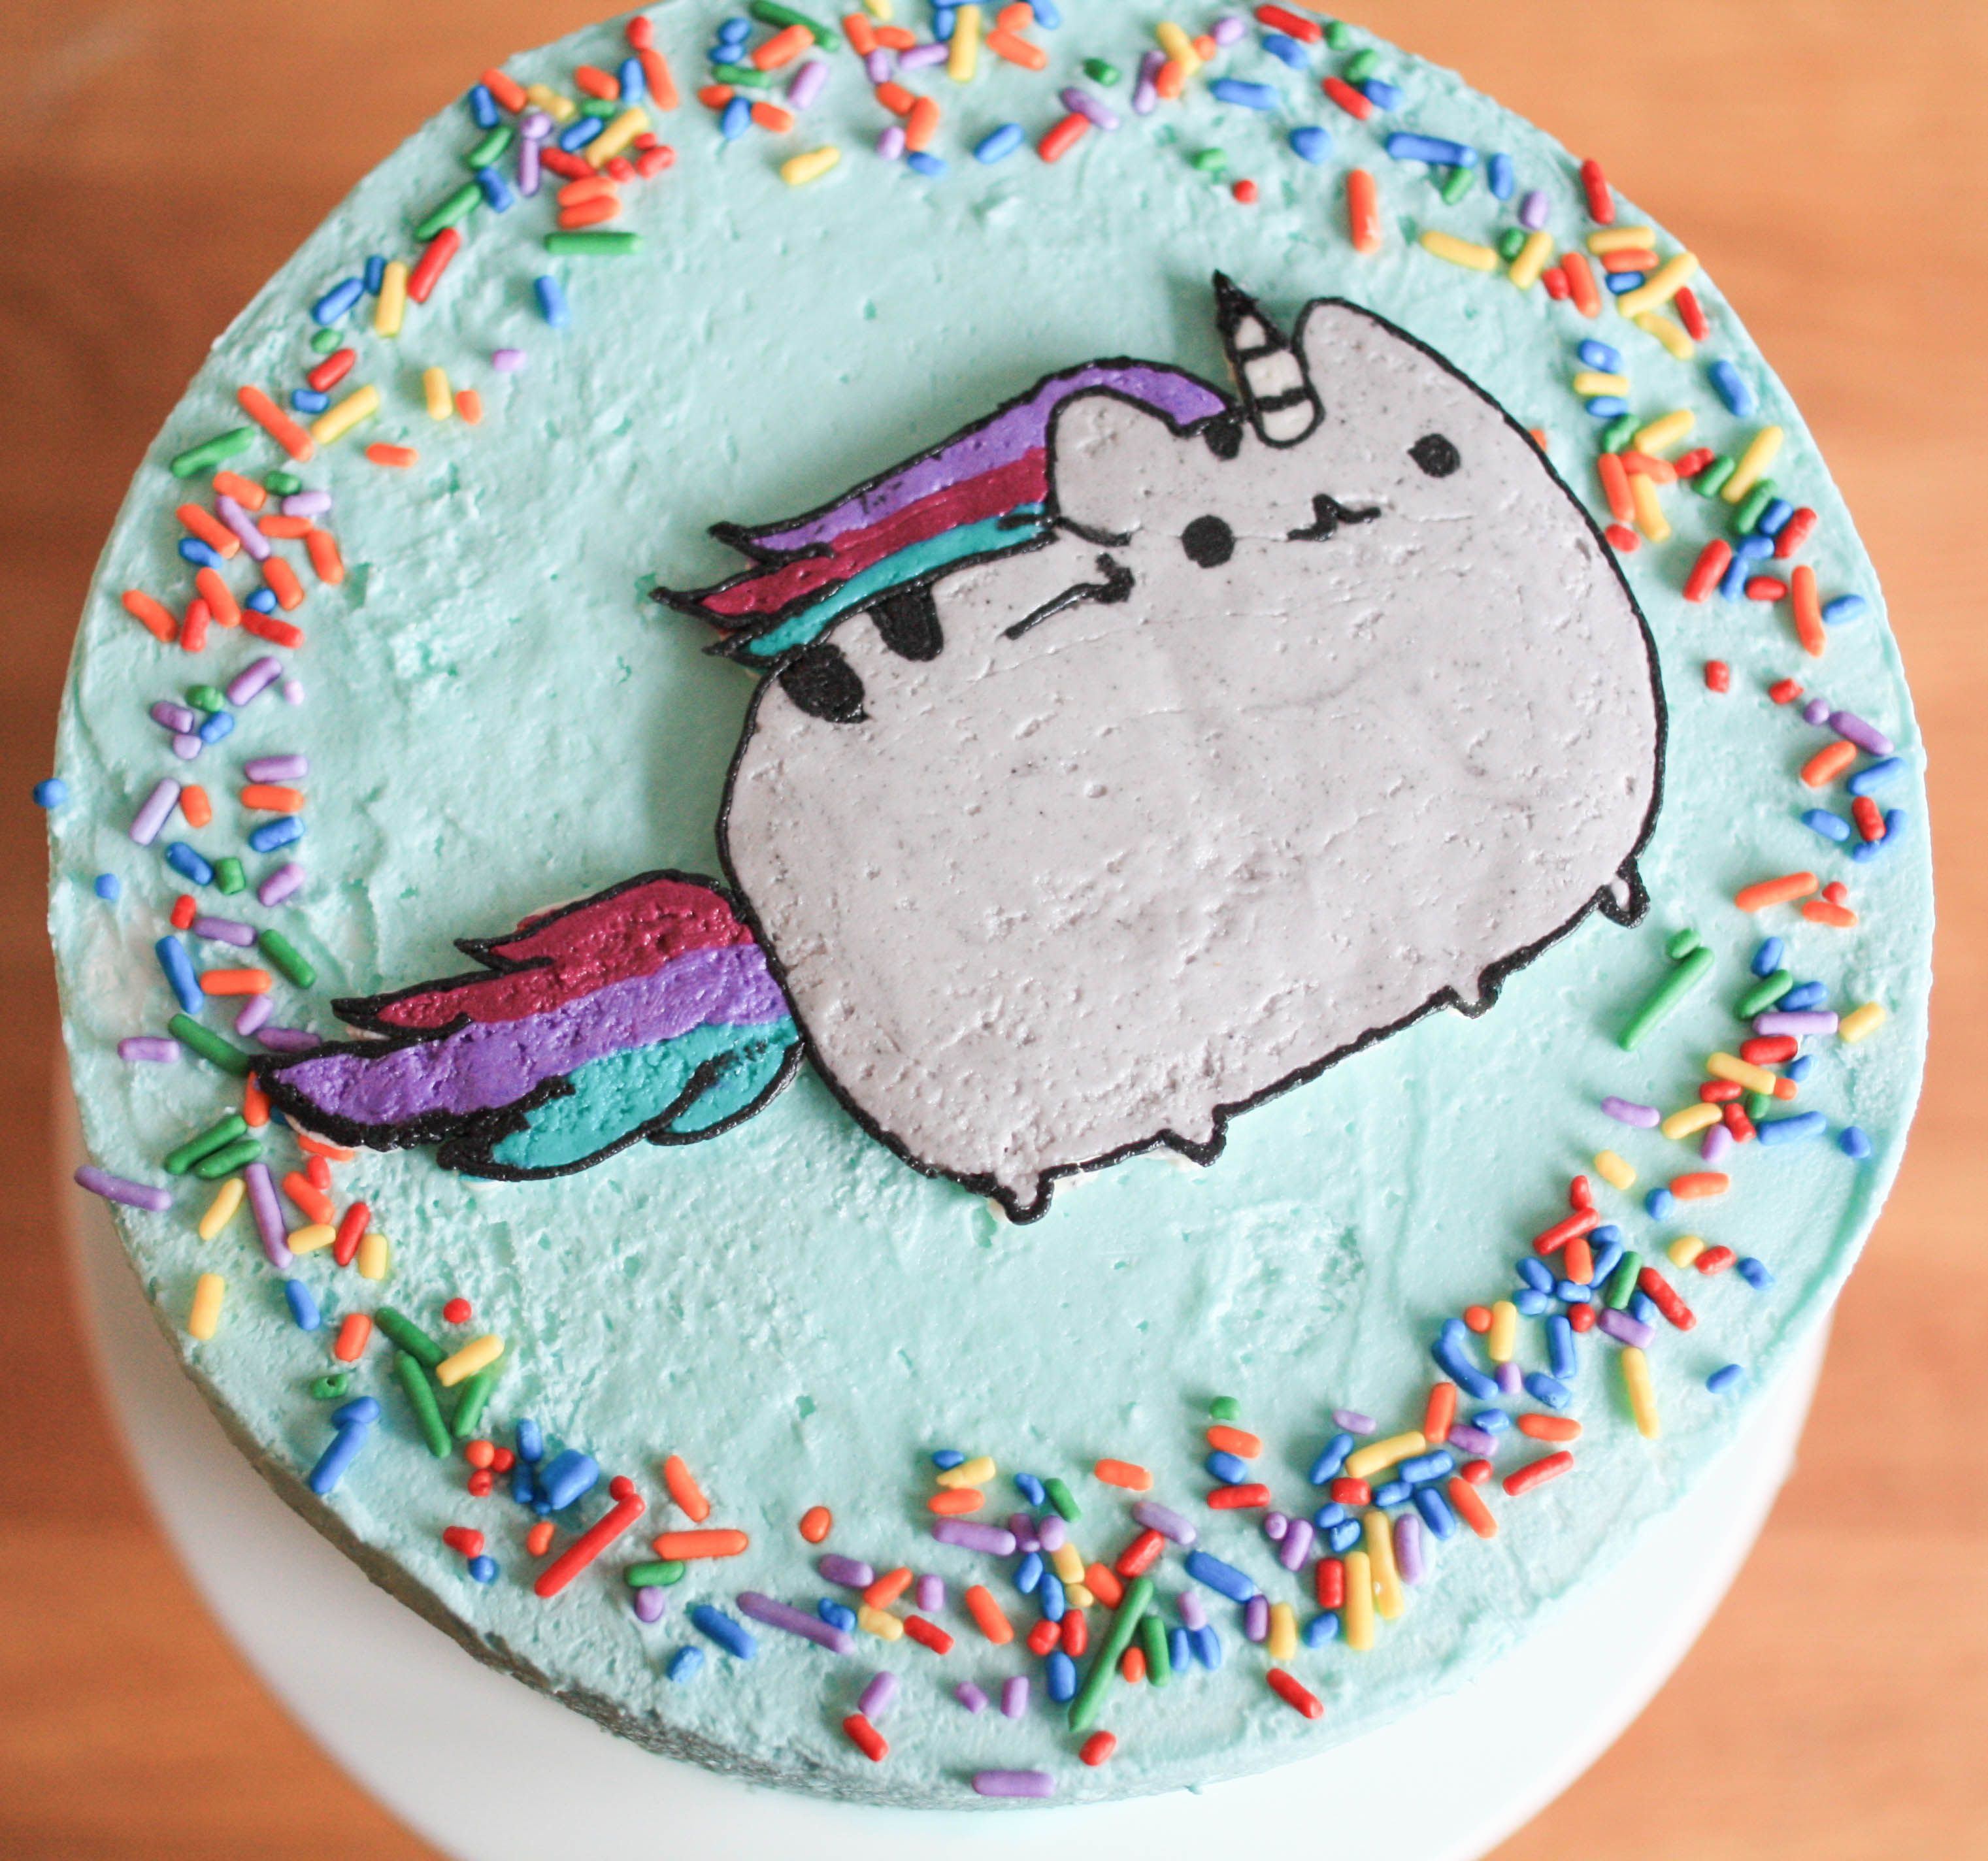 Cake Decorating Buttercream Transfer Community : How to Make a Frozen Buttercream Transfer Character cakes, Learning and Cake